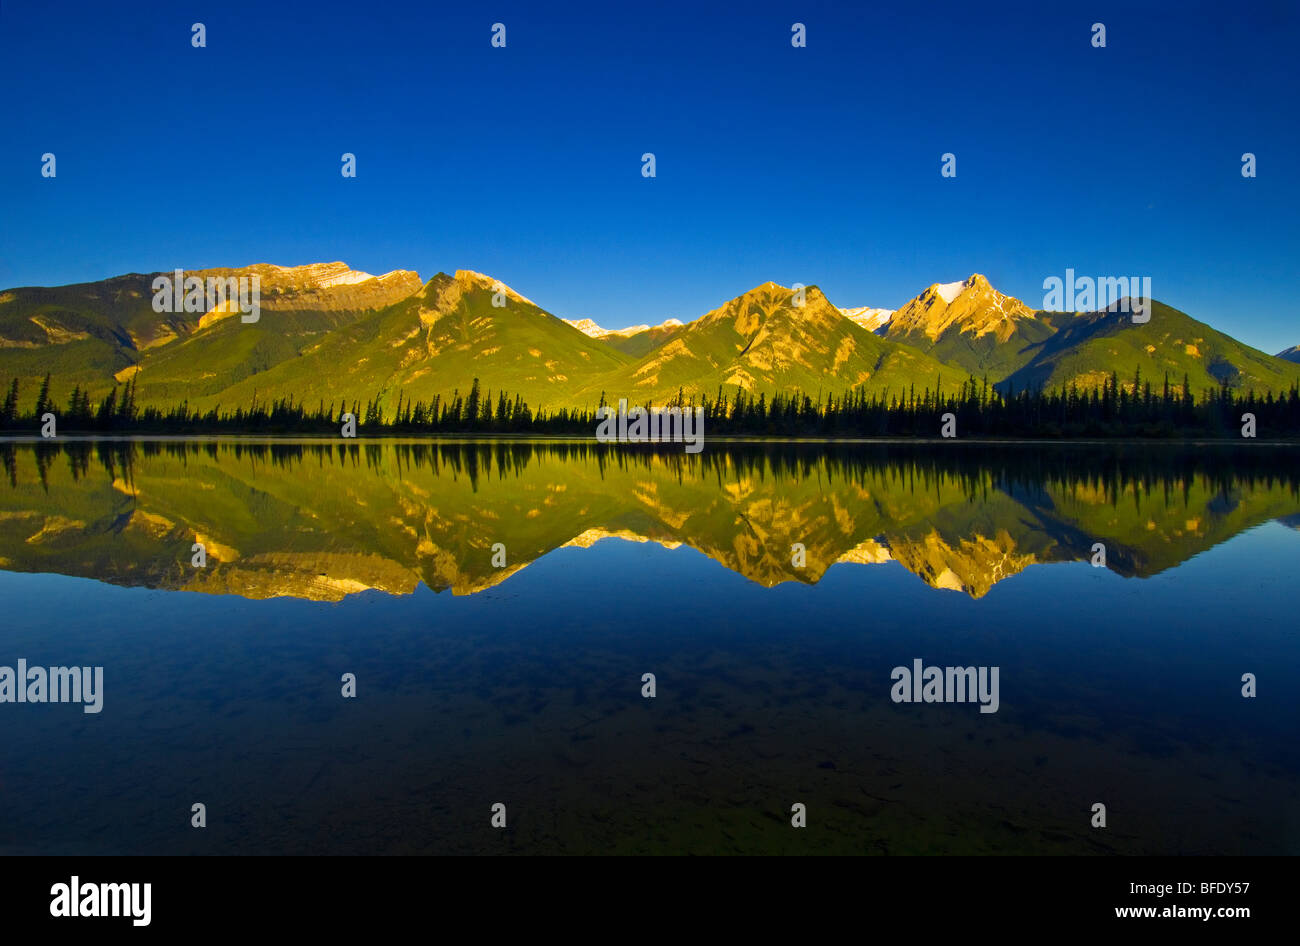 Pond west of Jasper Lake at sunrise, Jasper National Park, Alberta, Canada. - Stock Image